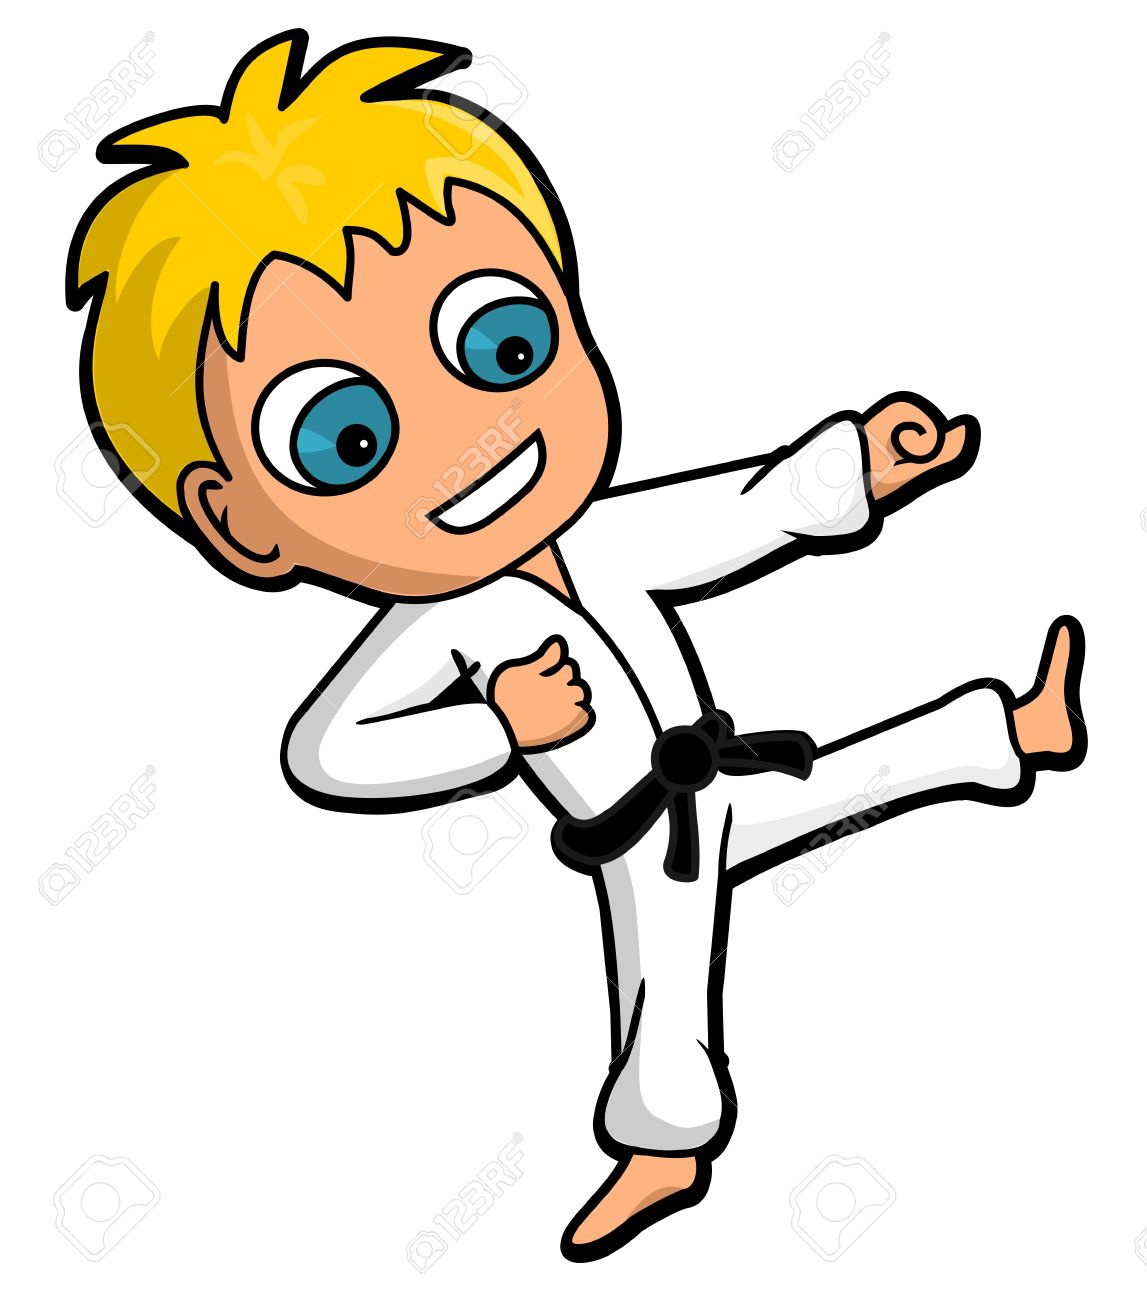 kid character practicing karate kicking and punching, cartoon